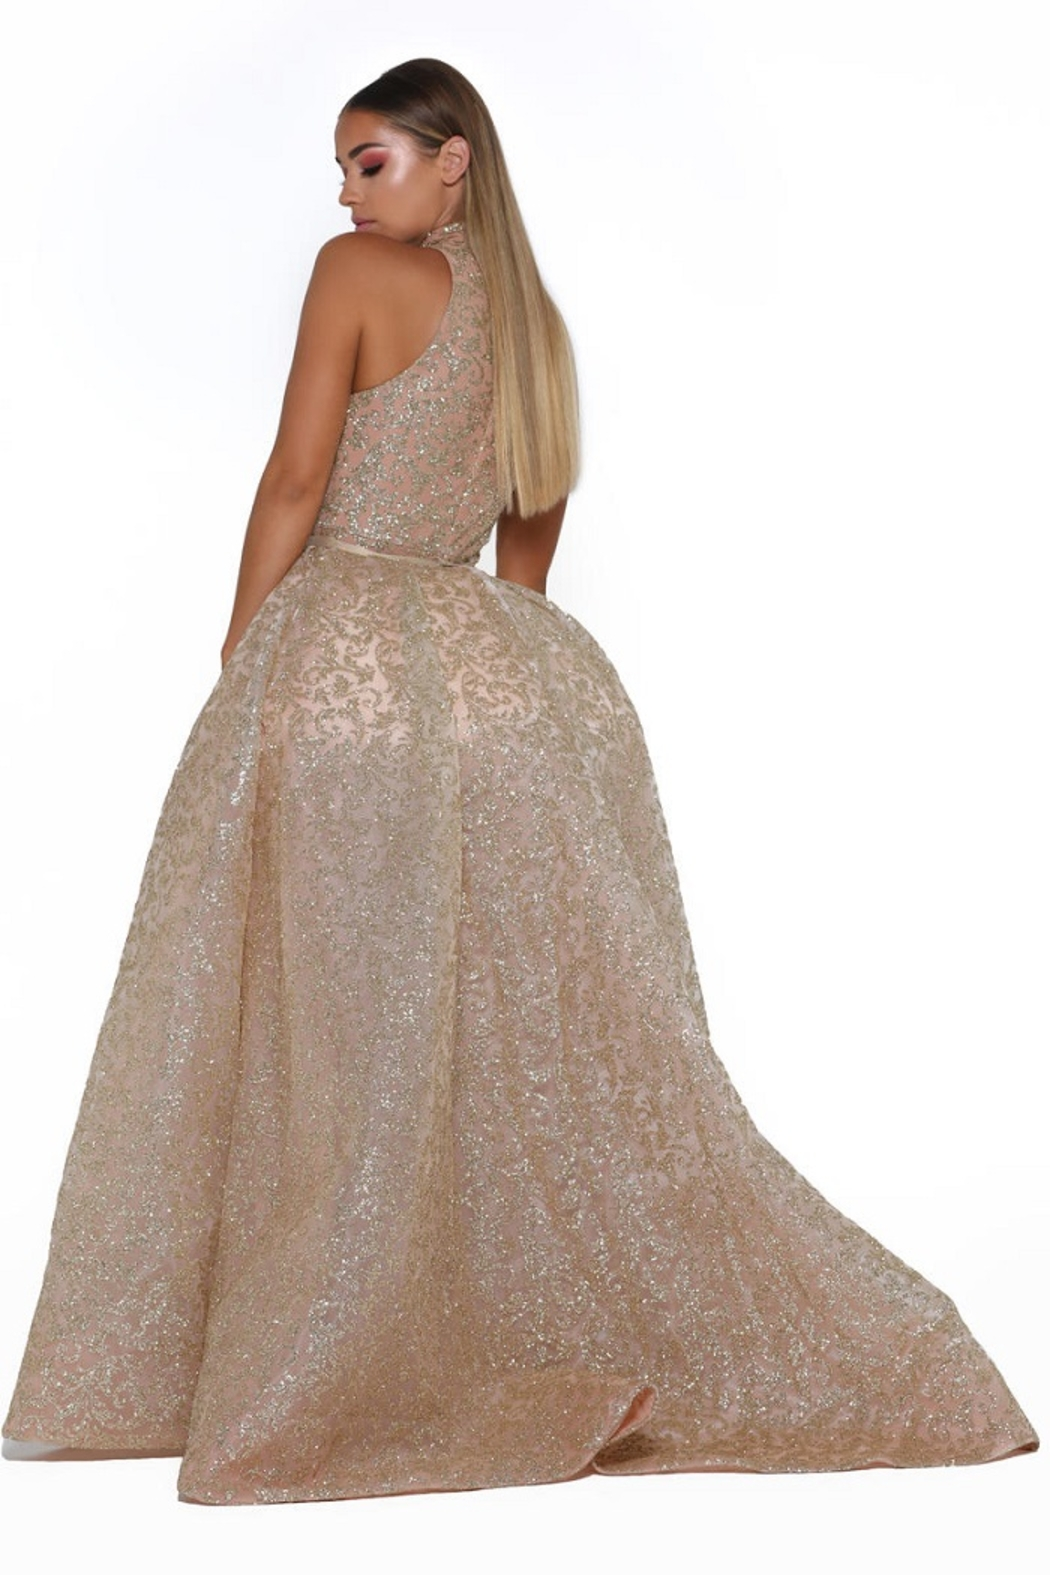 PORTIA AND SCARLETT Rose Gold Glitter Long Formal Dress With Detachable Train - Front Full Image